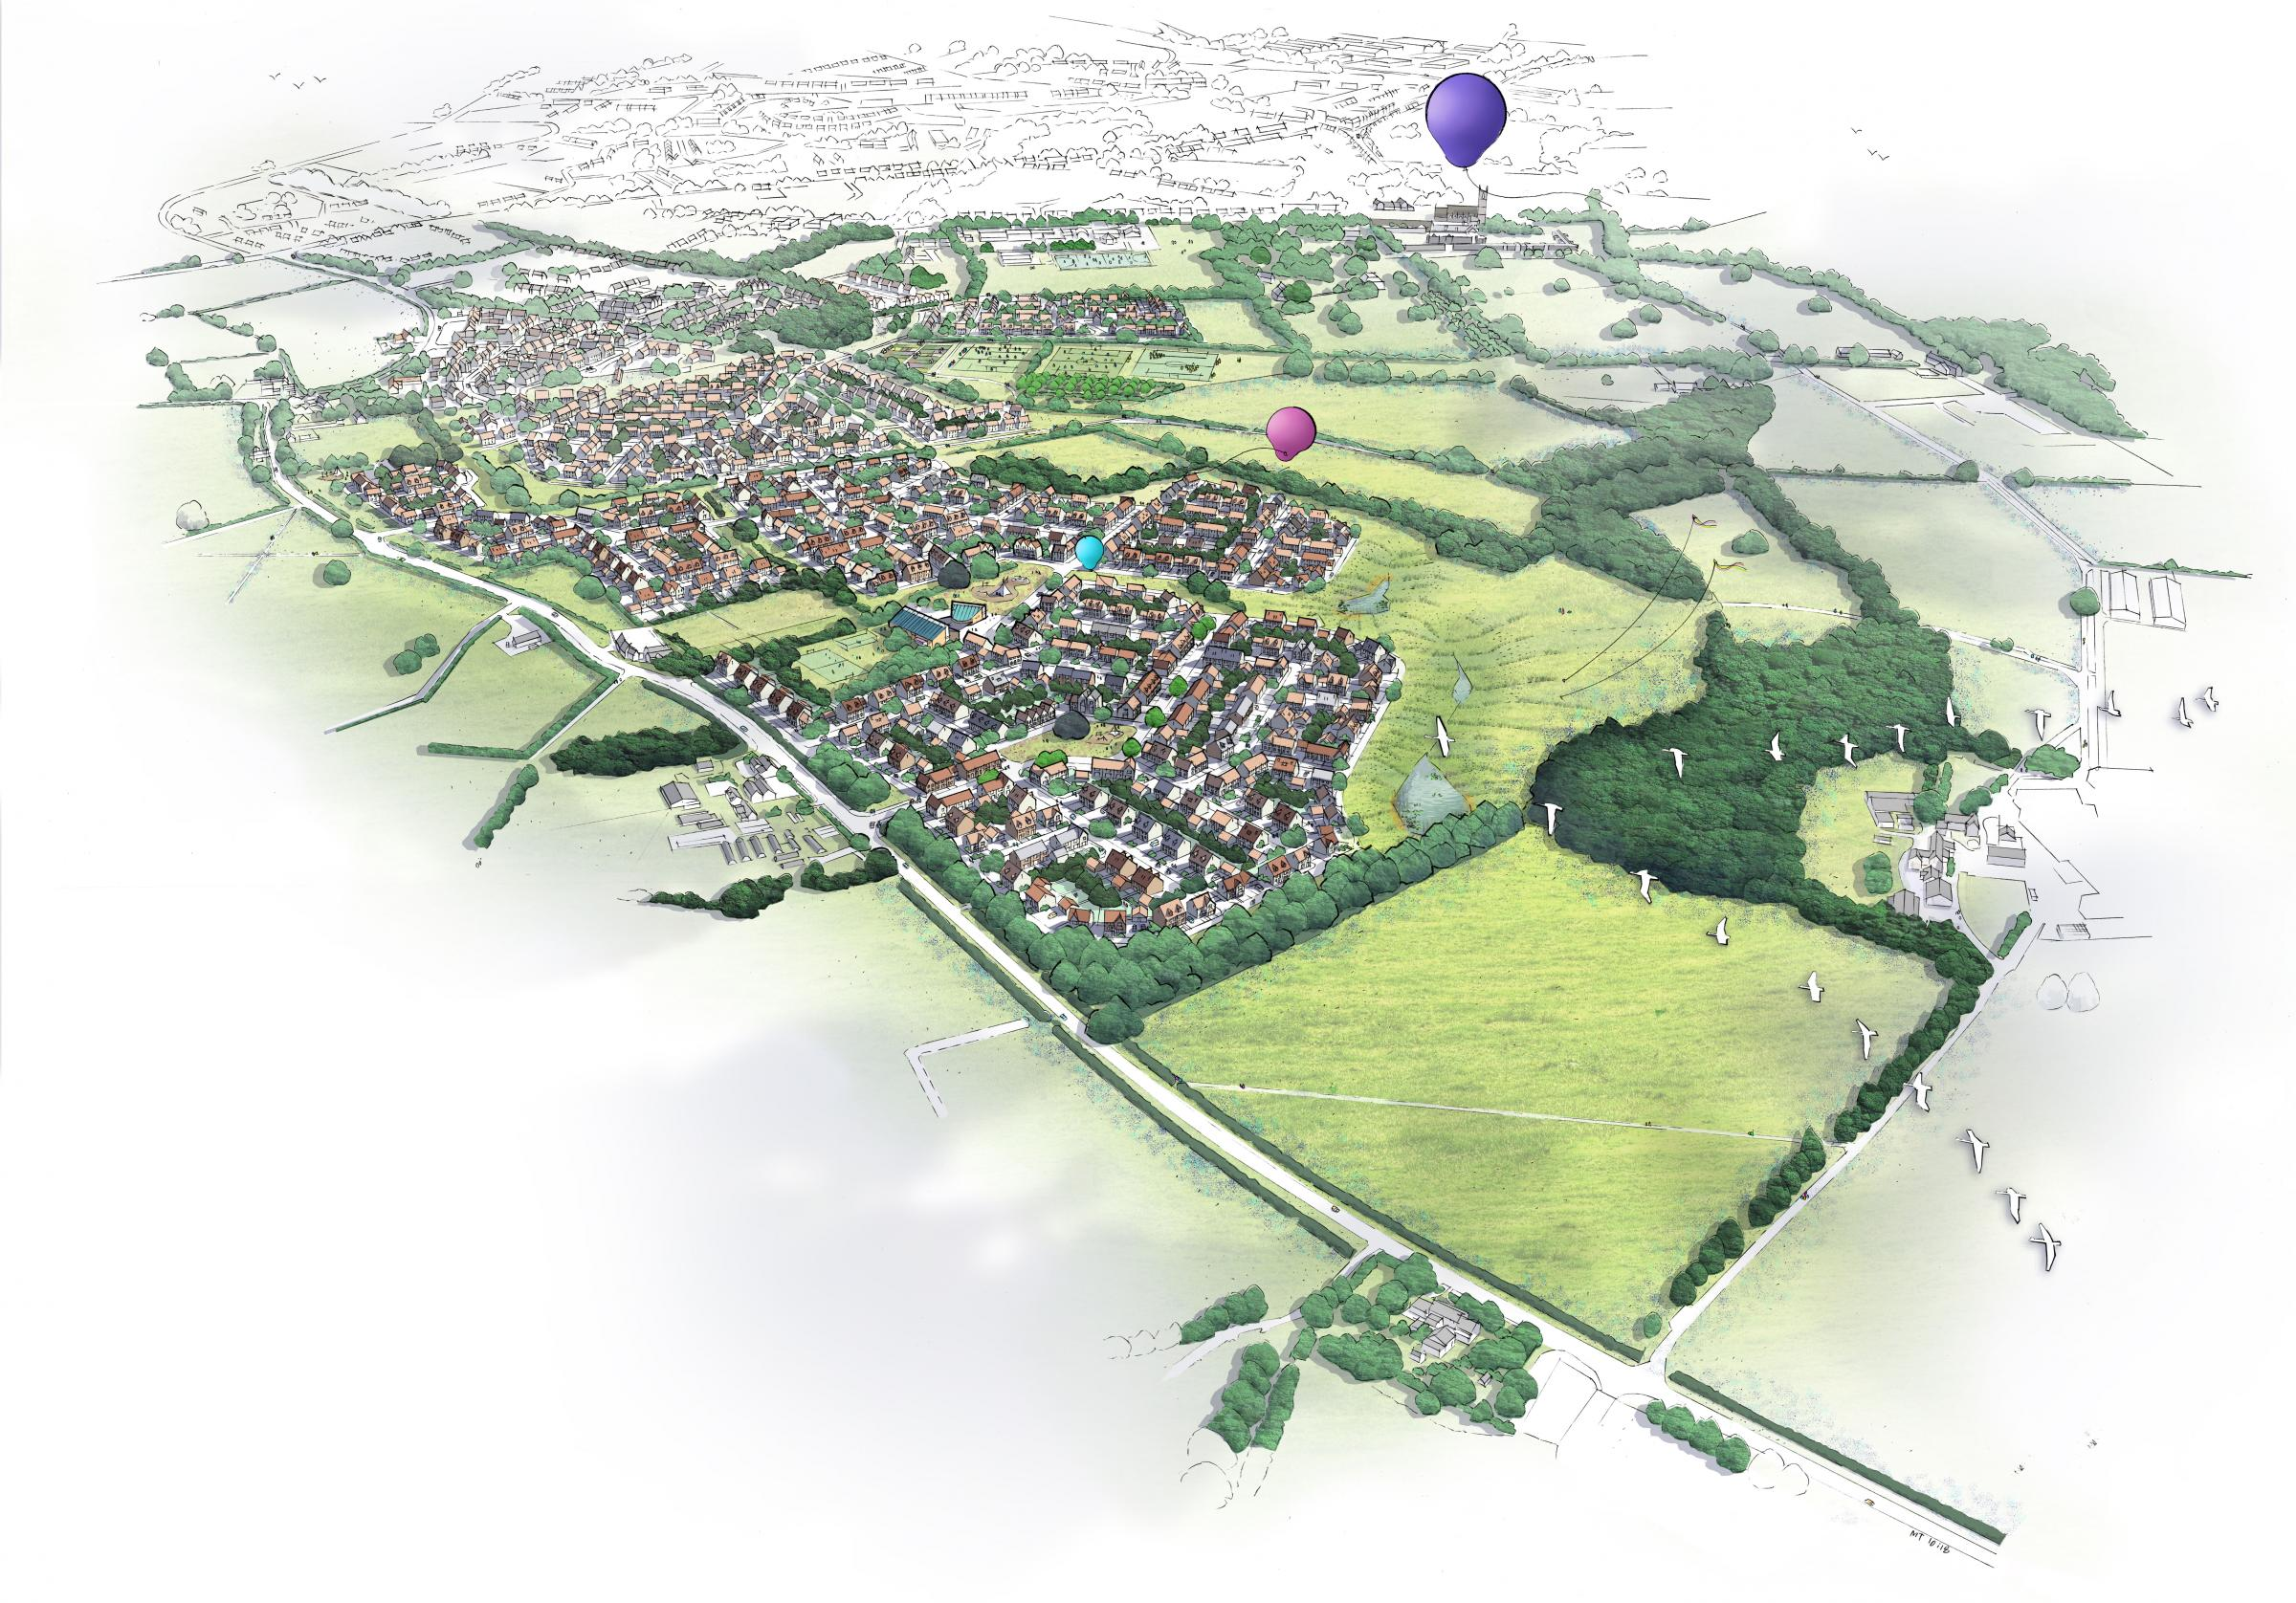 An artist's impression of the proposed Pickedmoor development